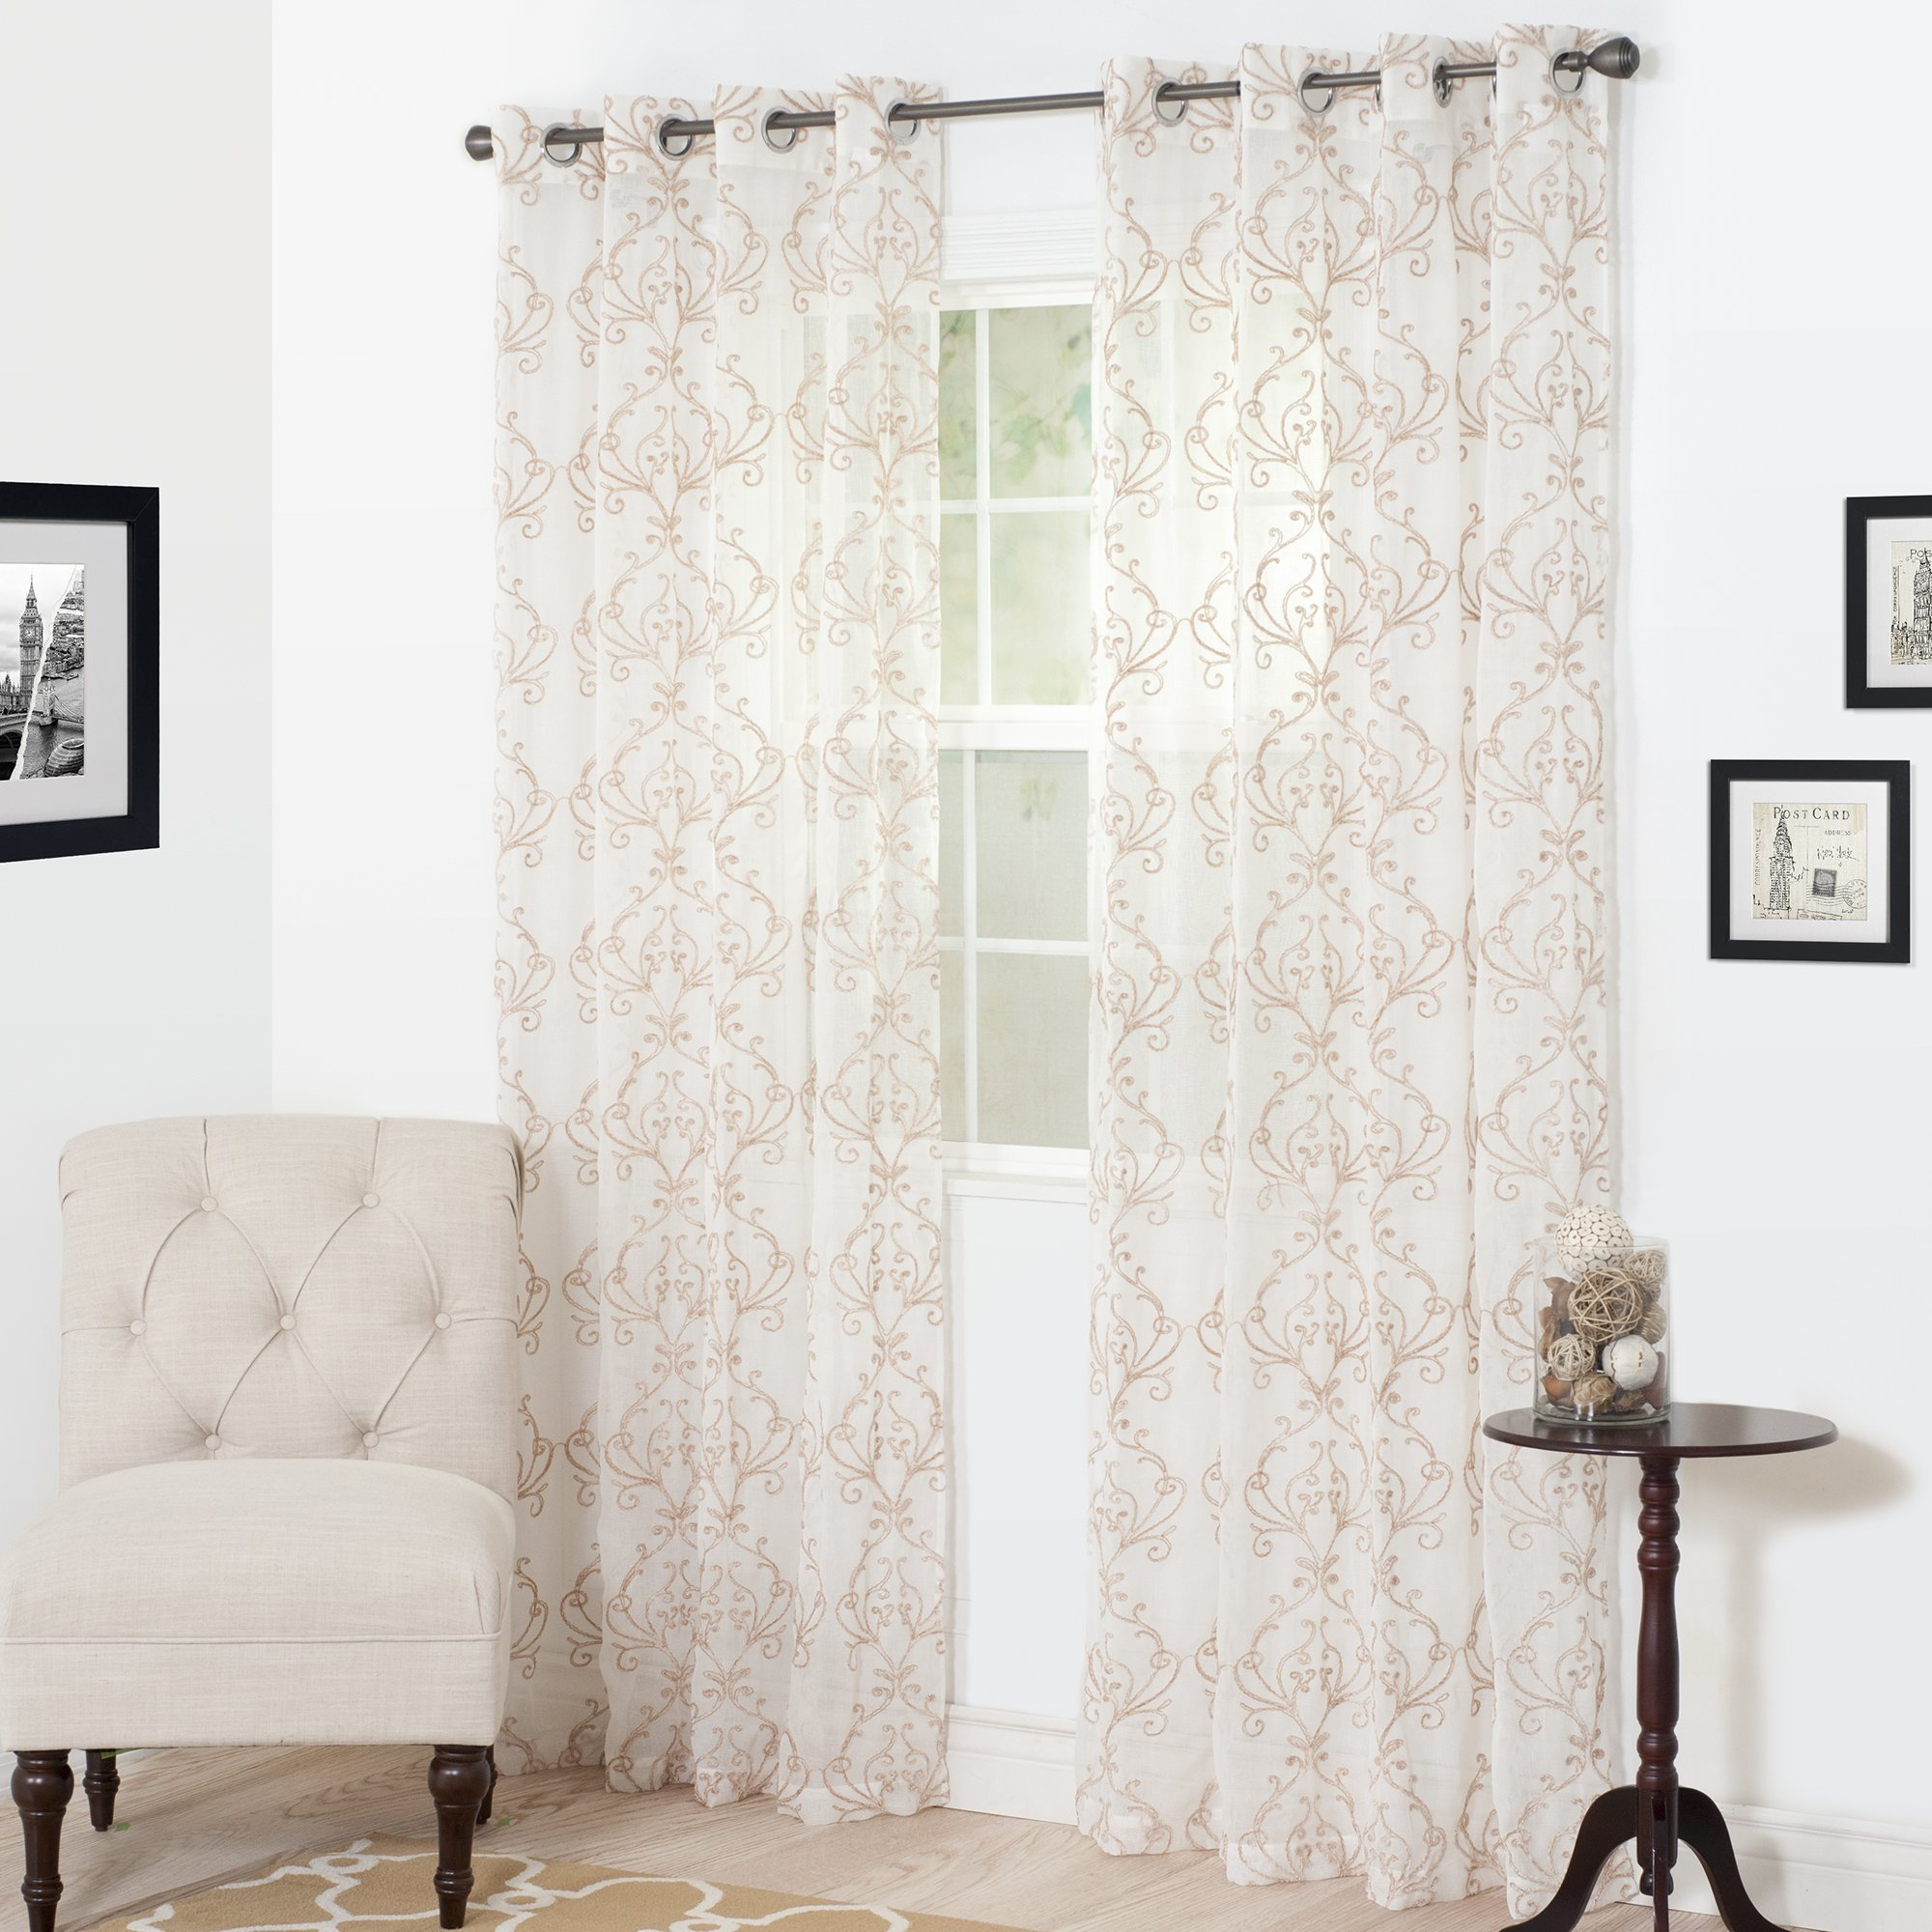 Lavish Home Valencia Embroidered Curtain, 108'', Taupe